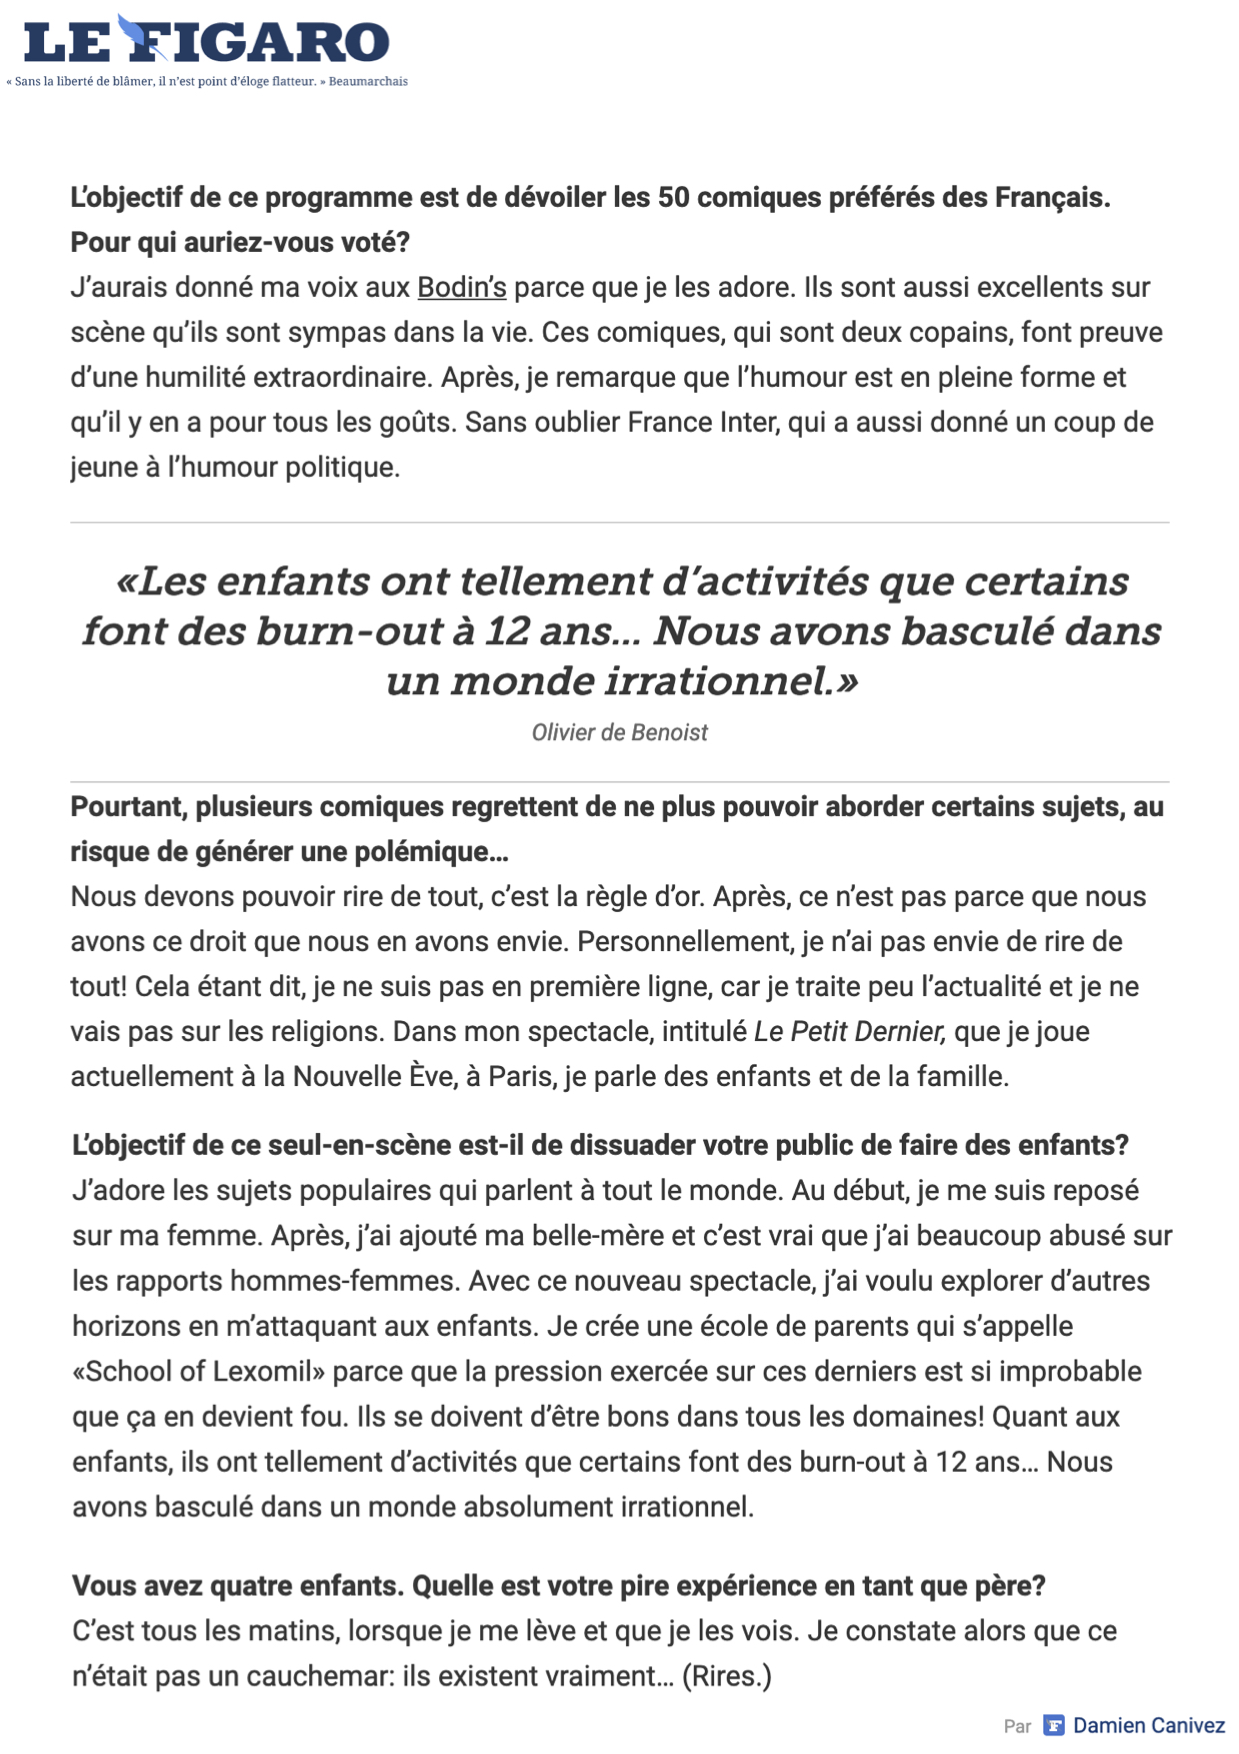 Le Figaro 22.02.20 - Page 2